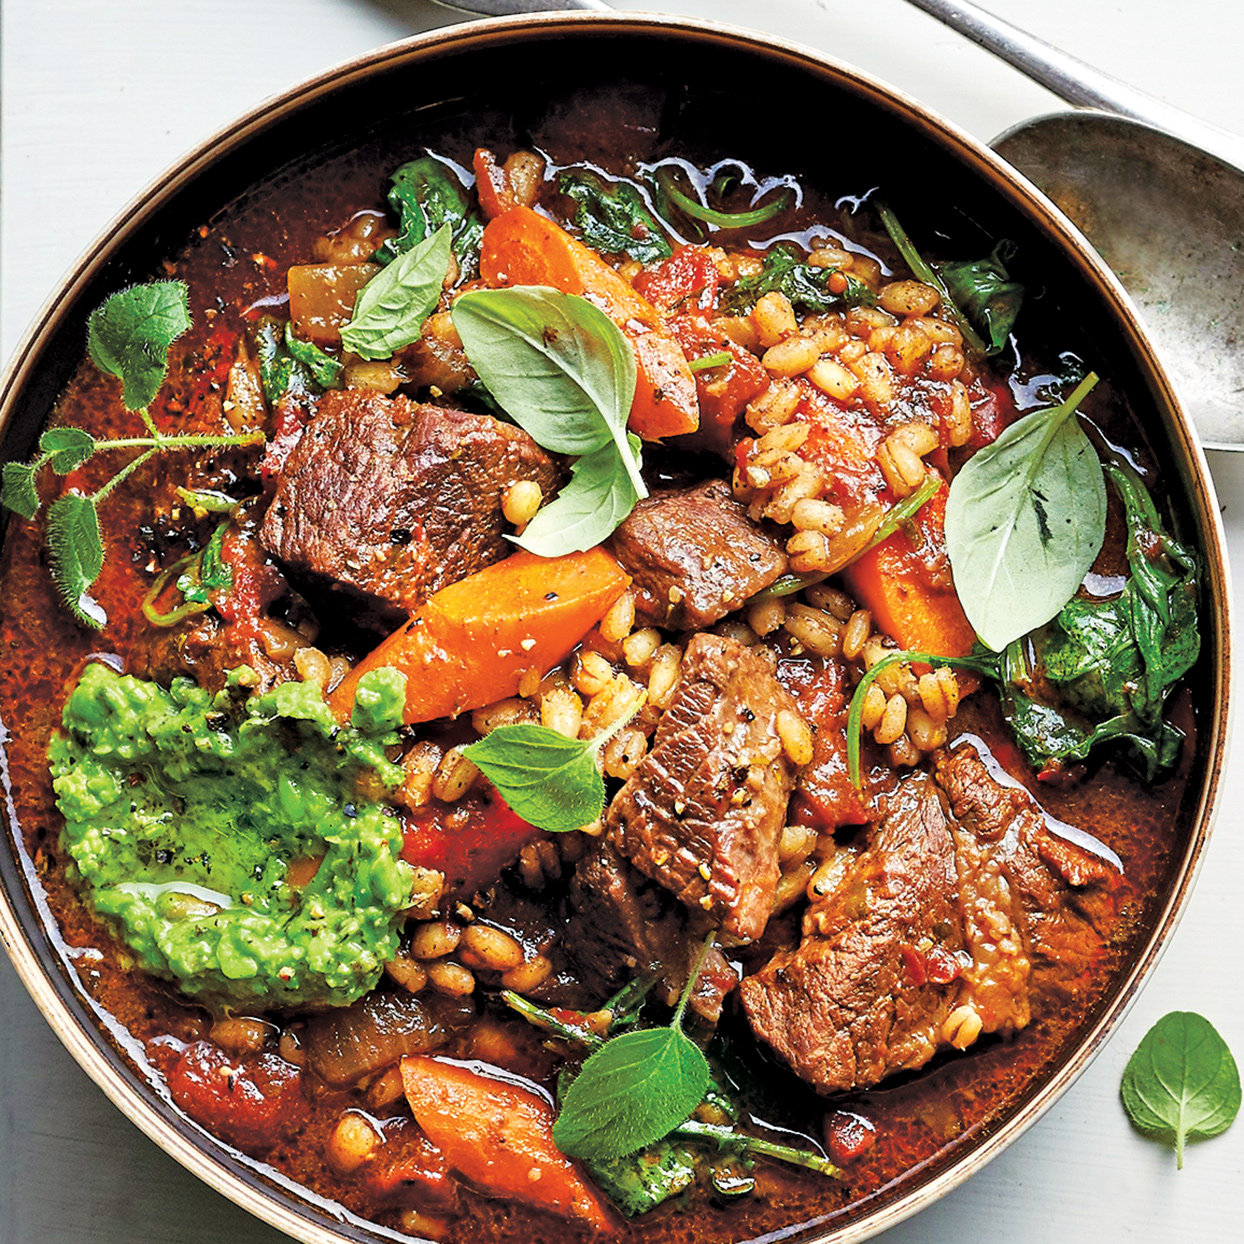 Hearty, thick, rich—this is just how a winter soup should be. The meat and carrots become tender yet retain their texture, and the kale offers freshness. Garnish each serving of this slow-cooker beef and barley soup with additional pesto and fresh basil and oregano sprigs, if desired.